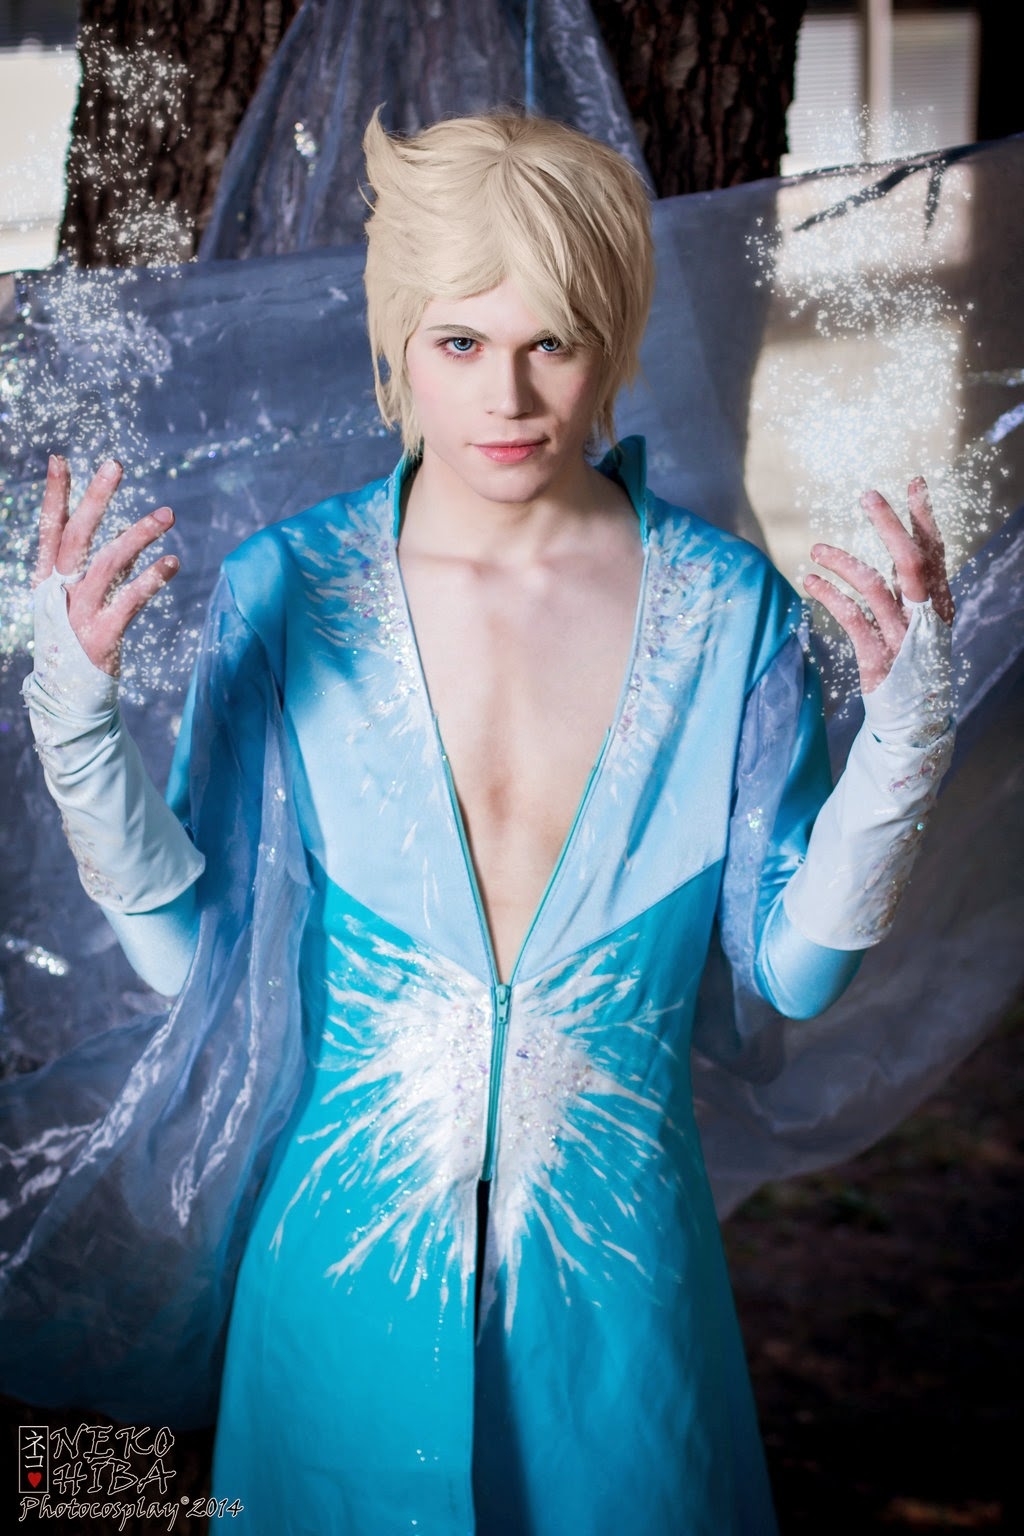 geek with curves: Gender Swapped Frozen Cosplay